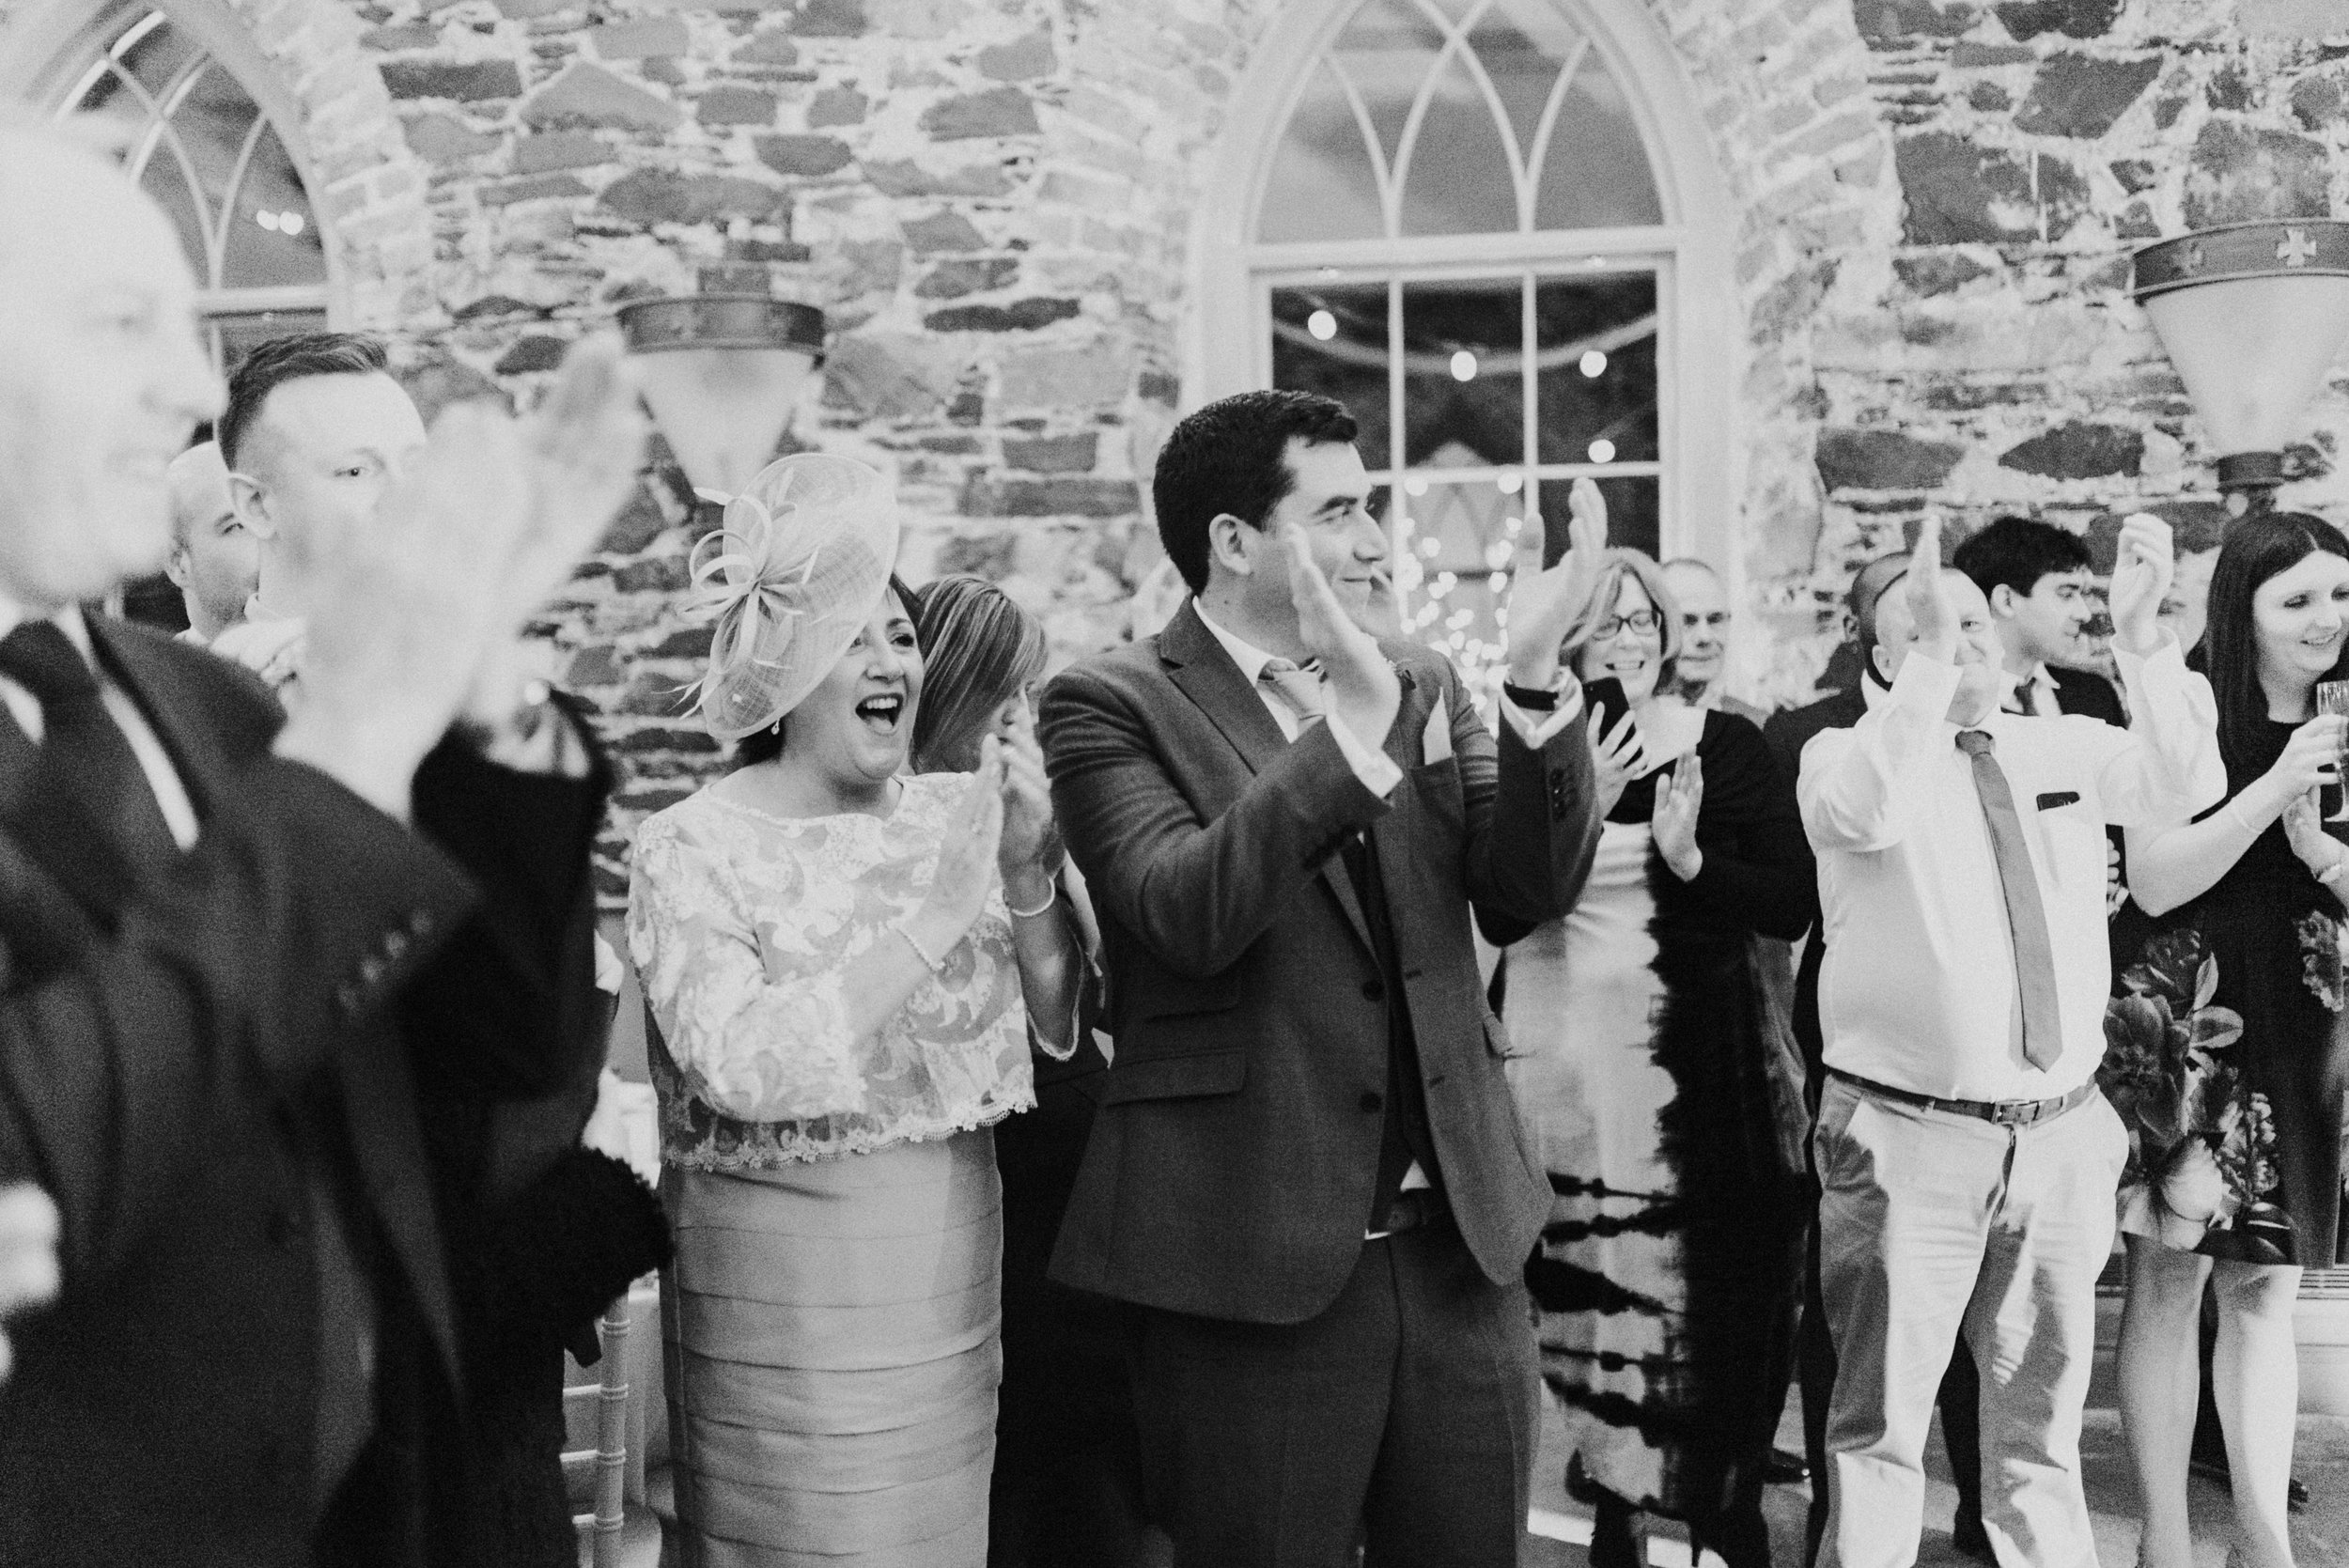 orange tree wedding, barn wedding venue northern ireland, rustic wedding venues NI, bright wedding venues northern ireland, greyabbey wedding venue, wedding speeches, first dance (17).jpg